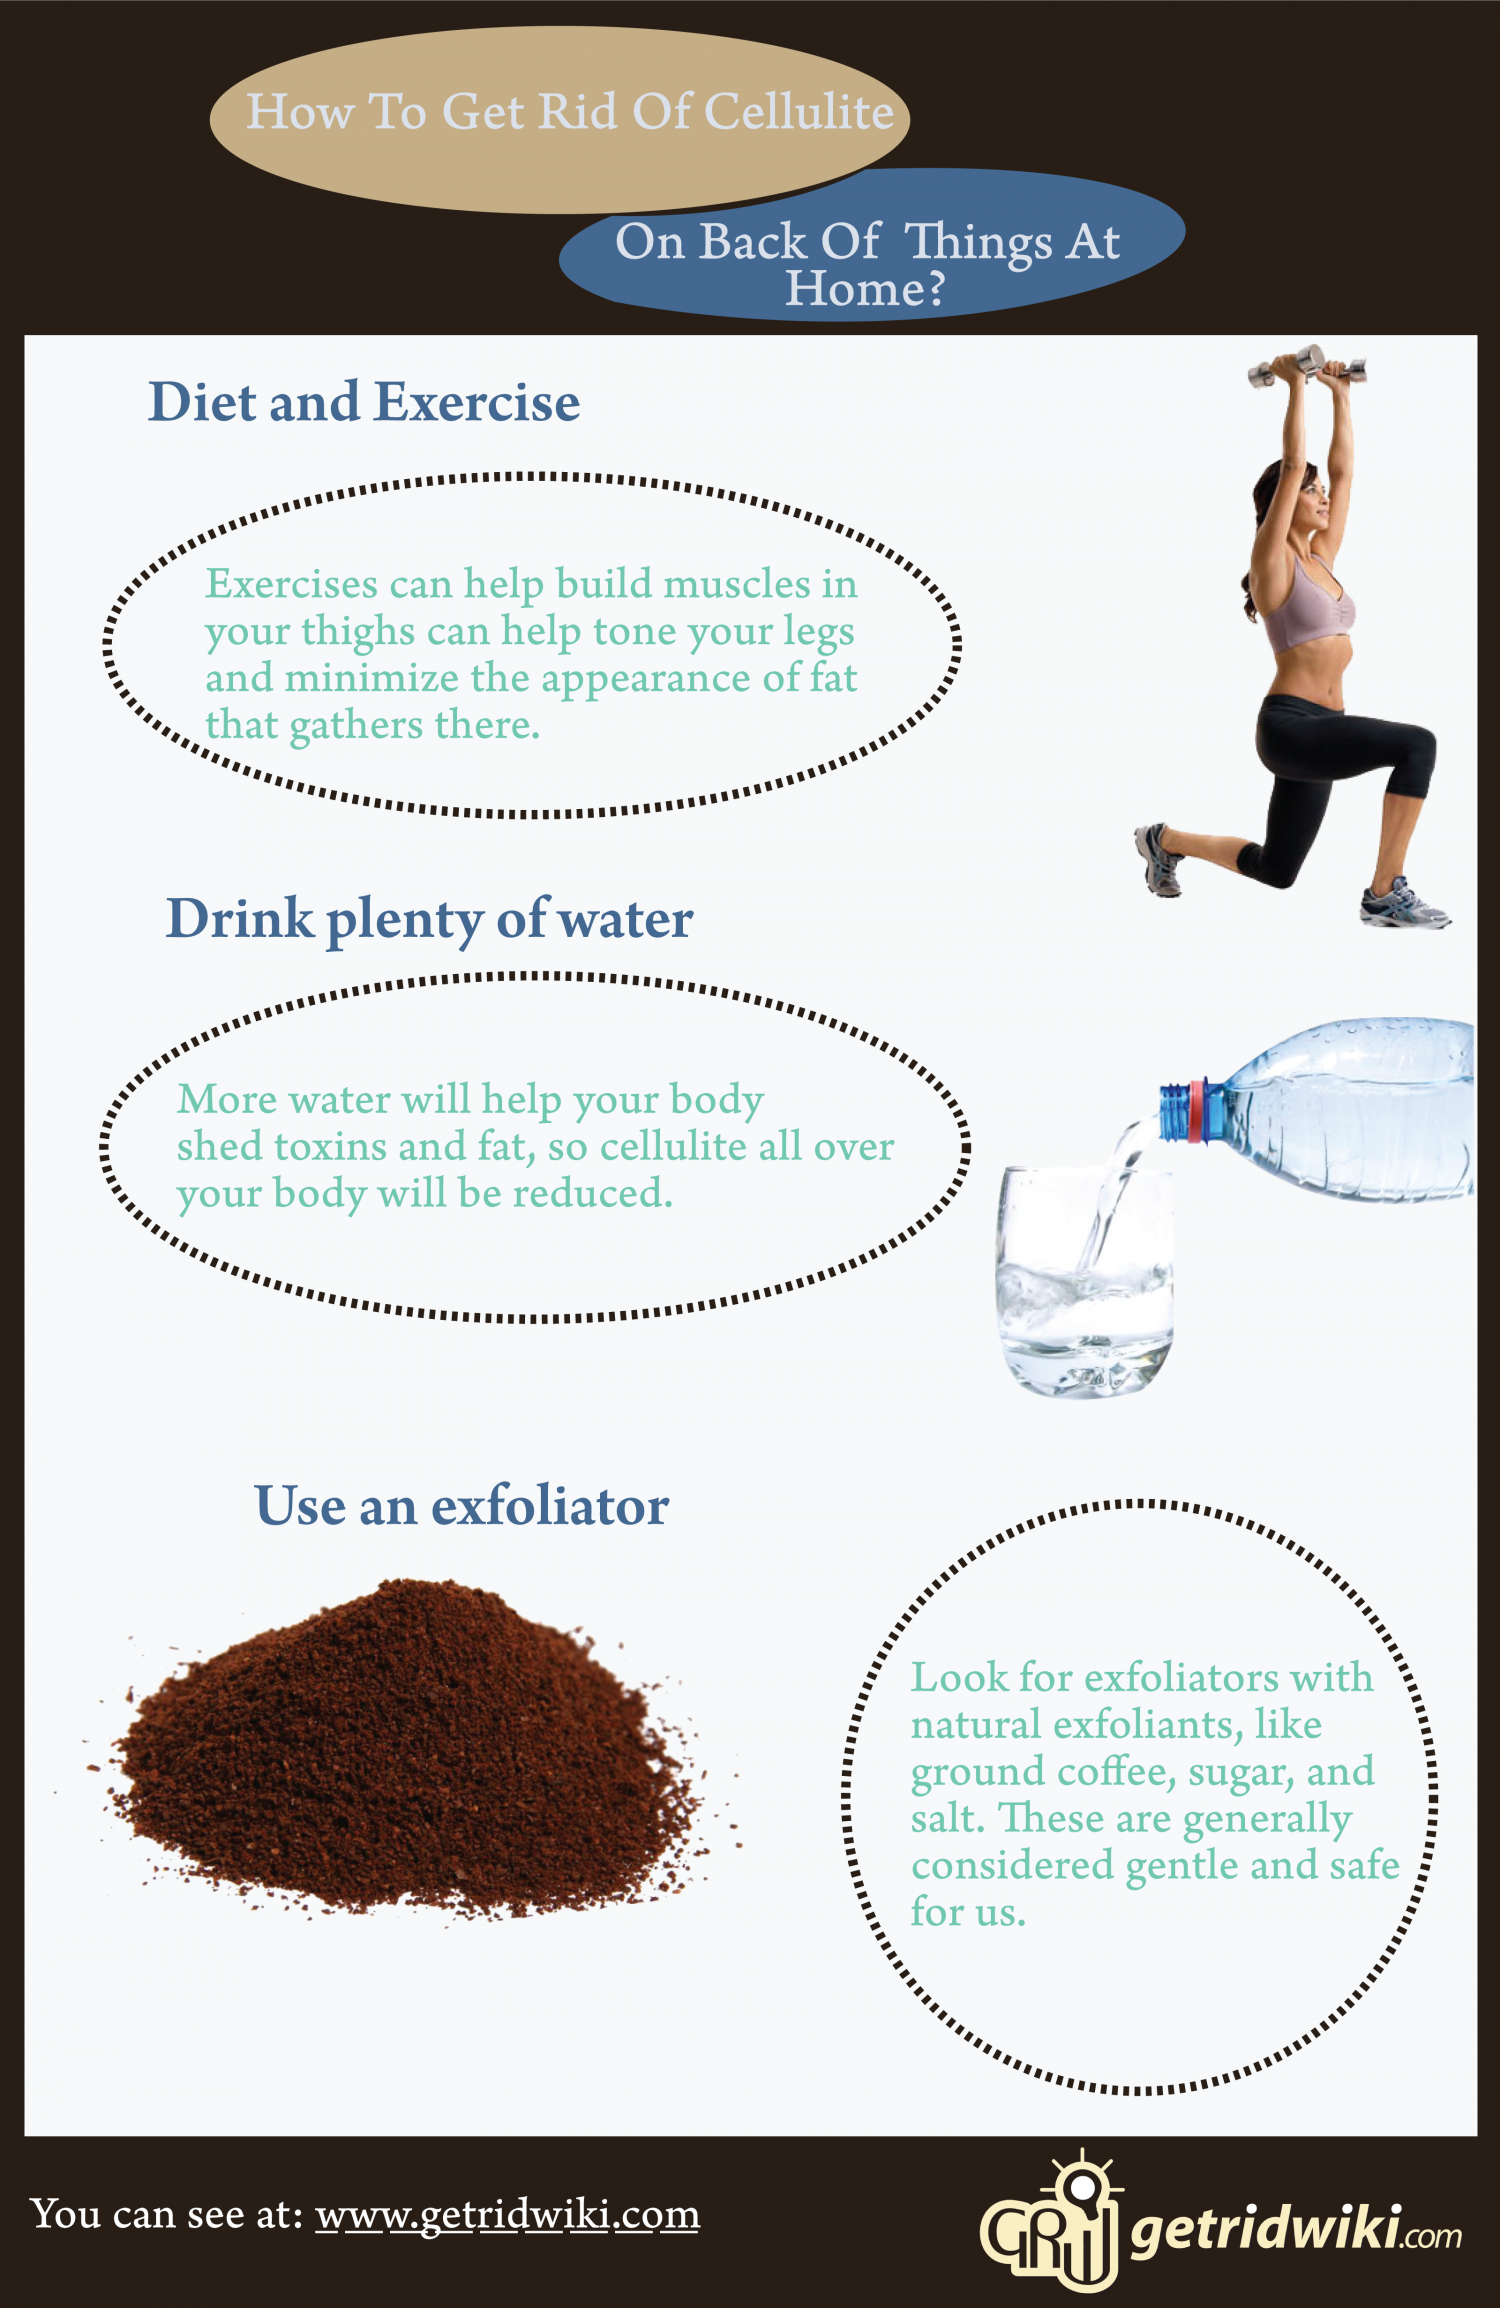 How to get rid of cellulite on back of things at home for How to get rid of things